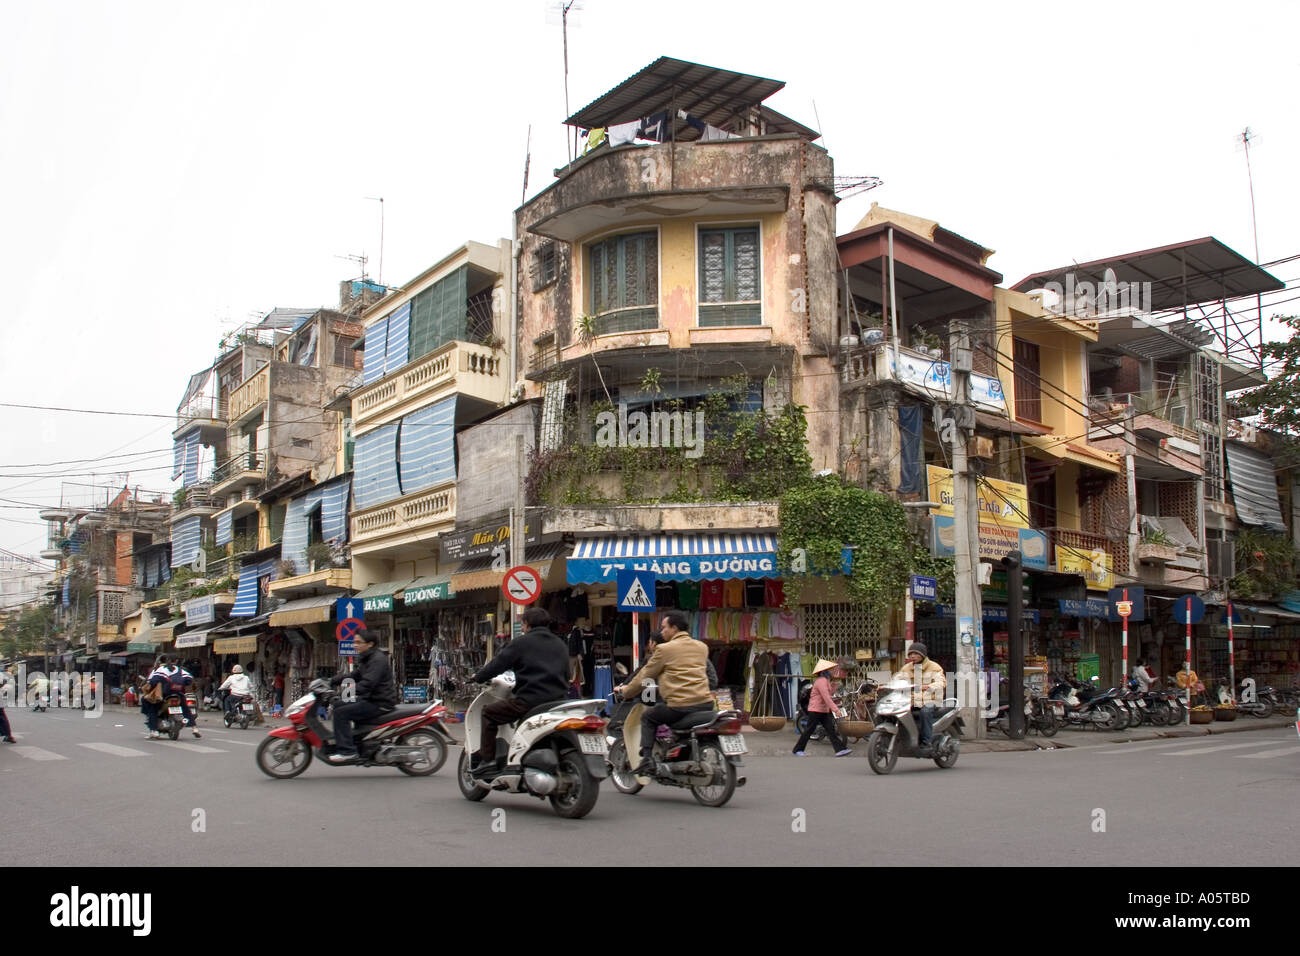 Vietnam Hanoi Centre Old Quarter architecture buildings at busy road junction - Stock Image